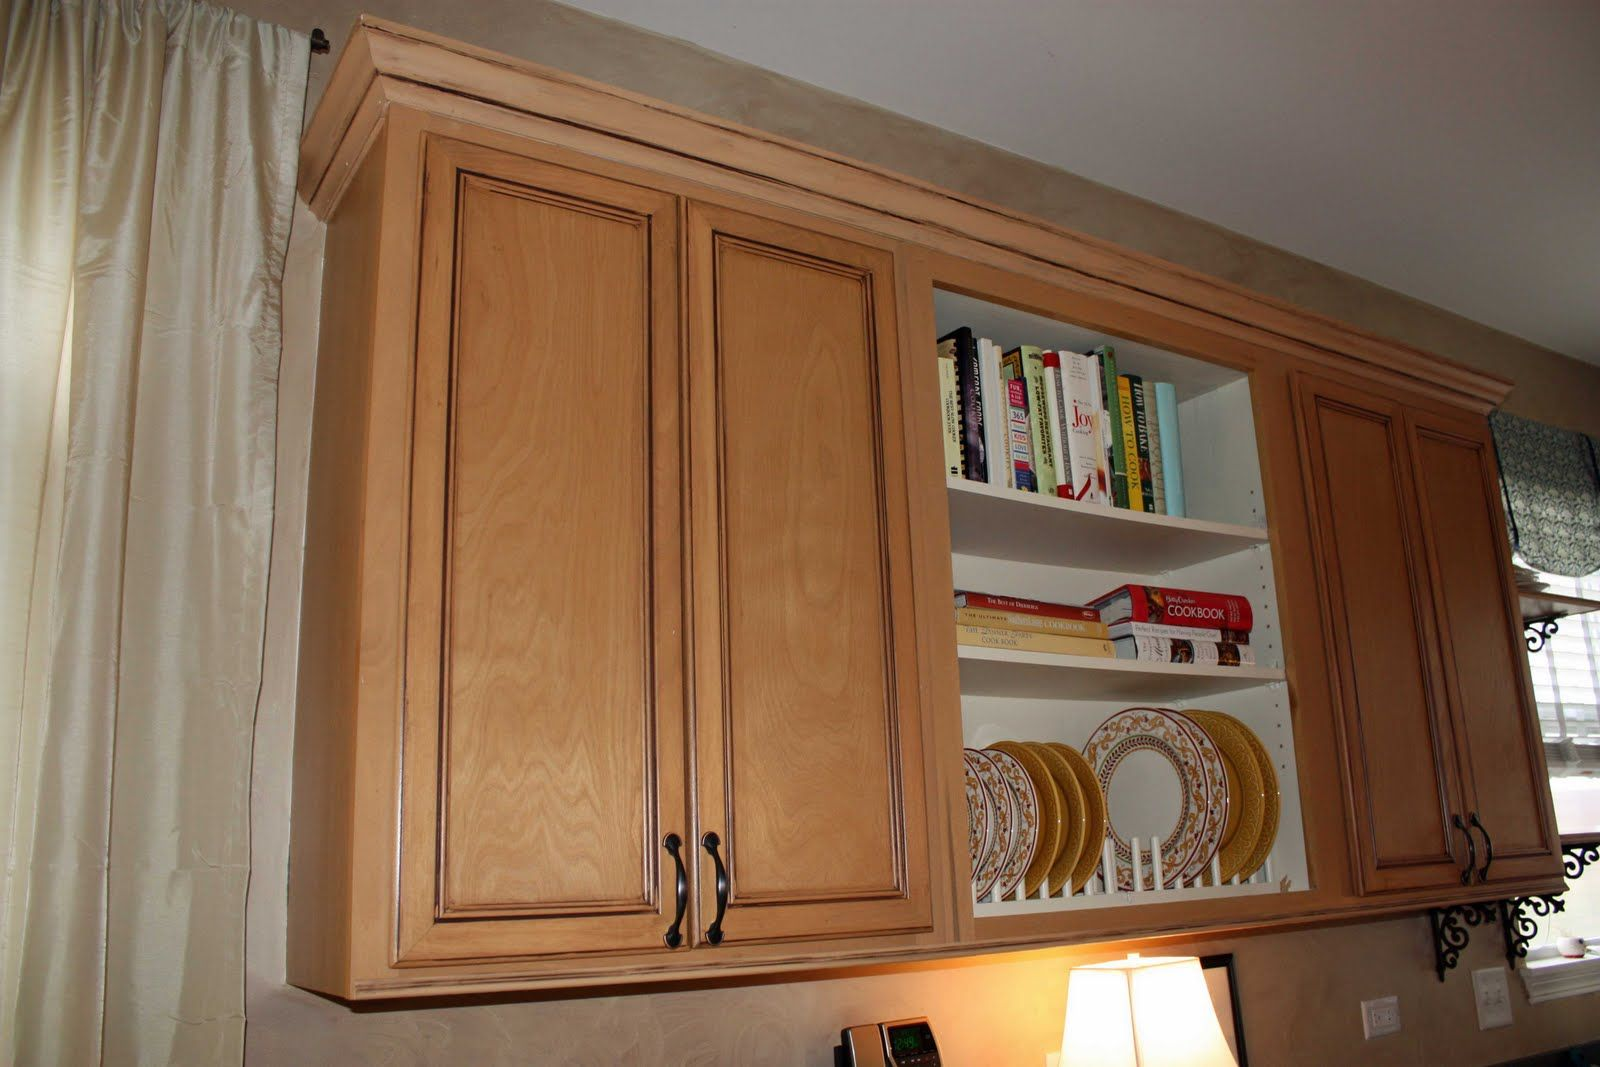 Transforming Home....: How to add crown molding to kitchen cabinets